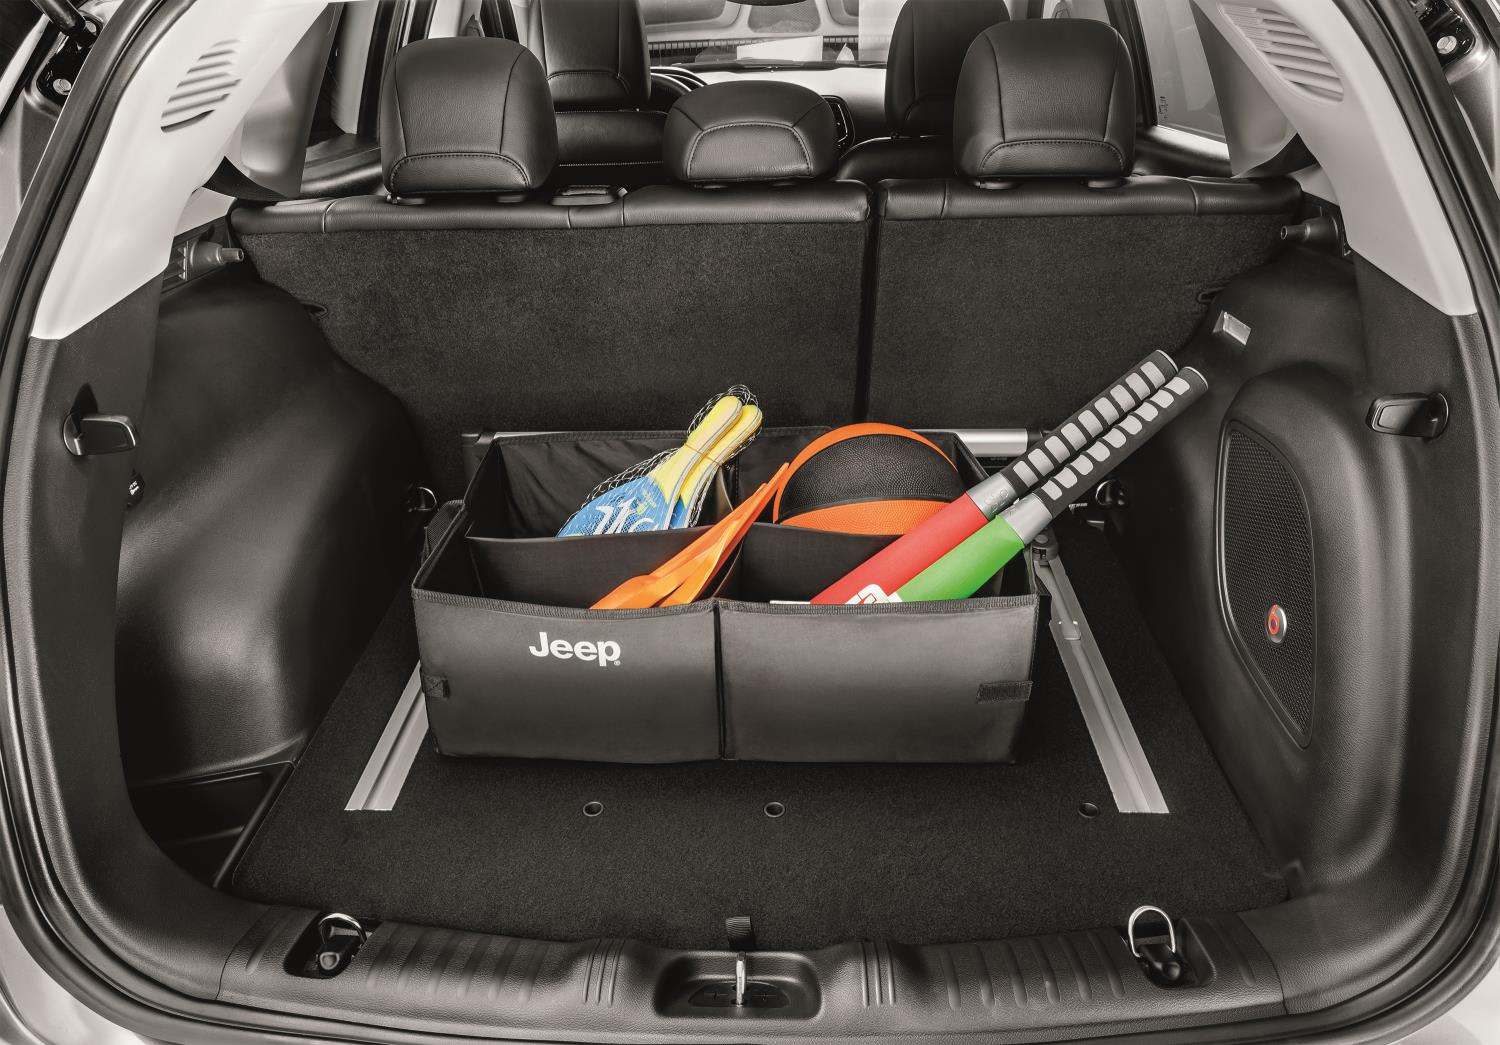 Mopar Introduces 2017 Jeep Compass Accessories, Hood Graphic is Just